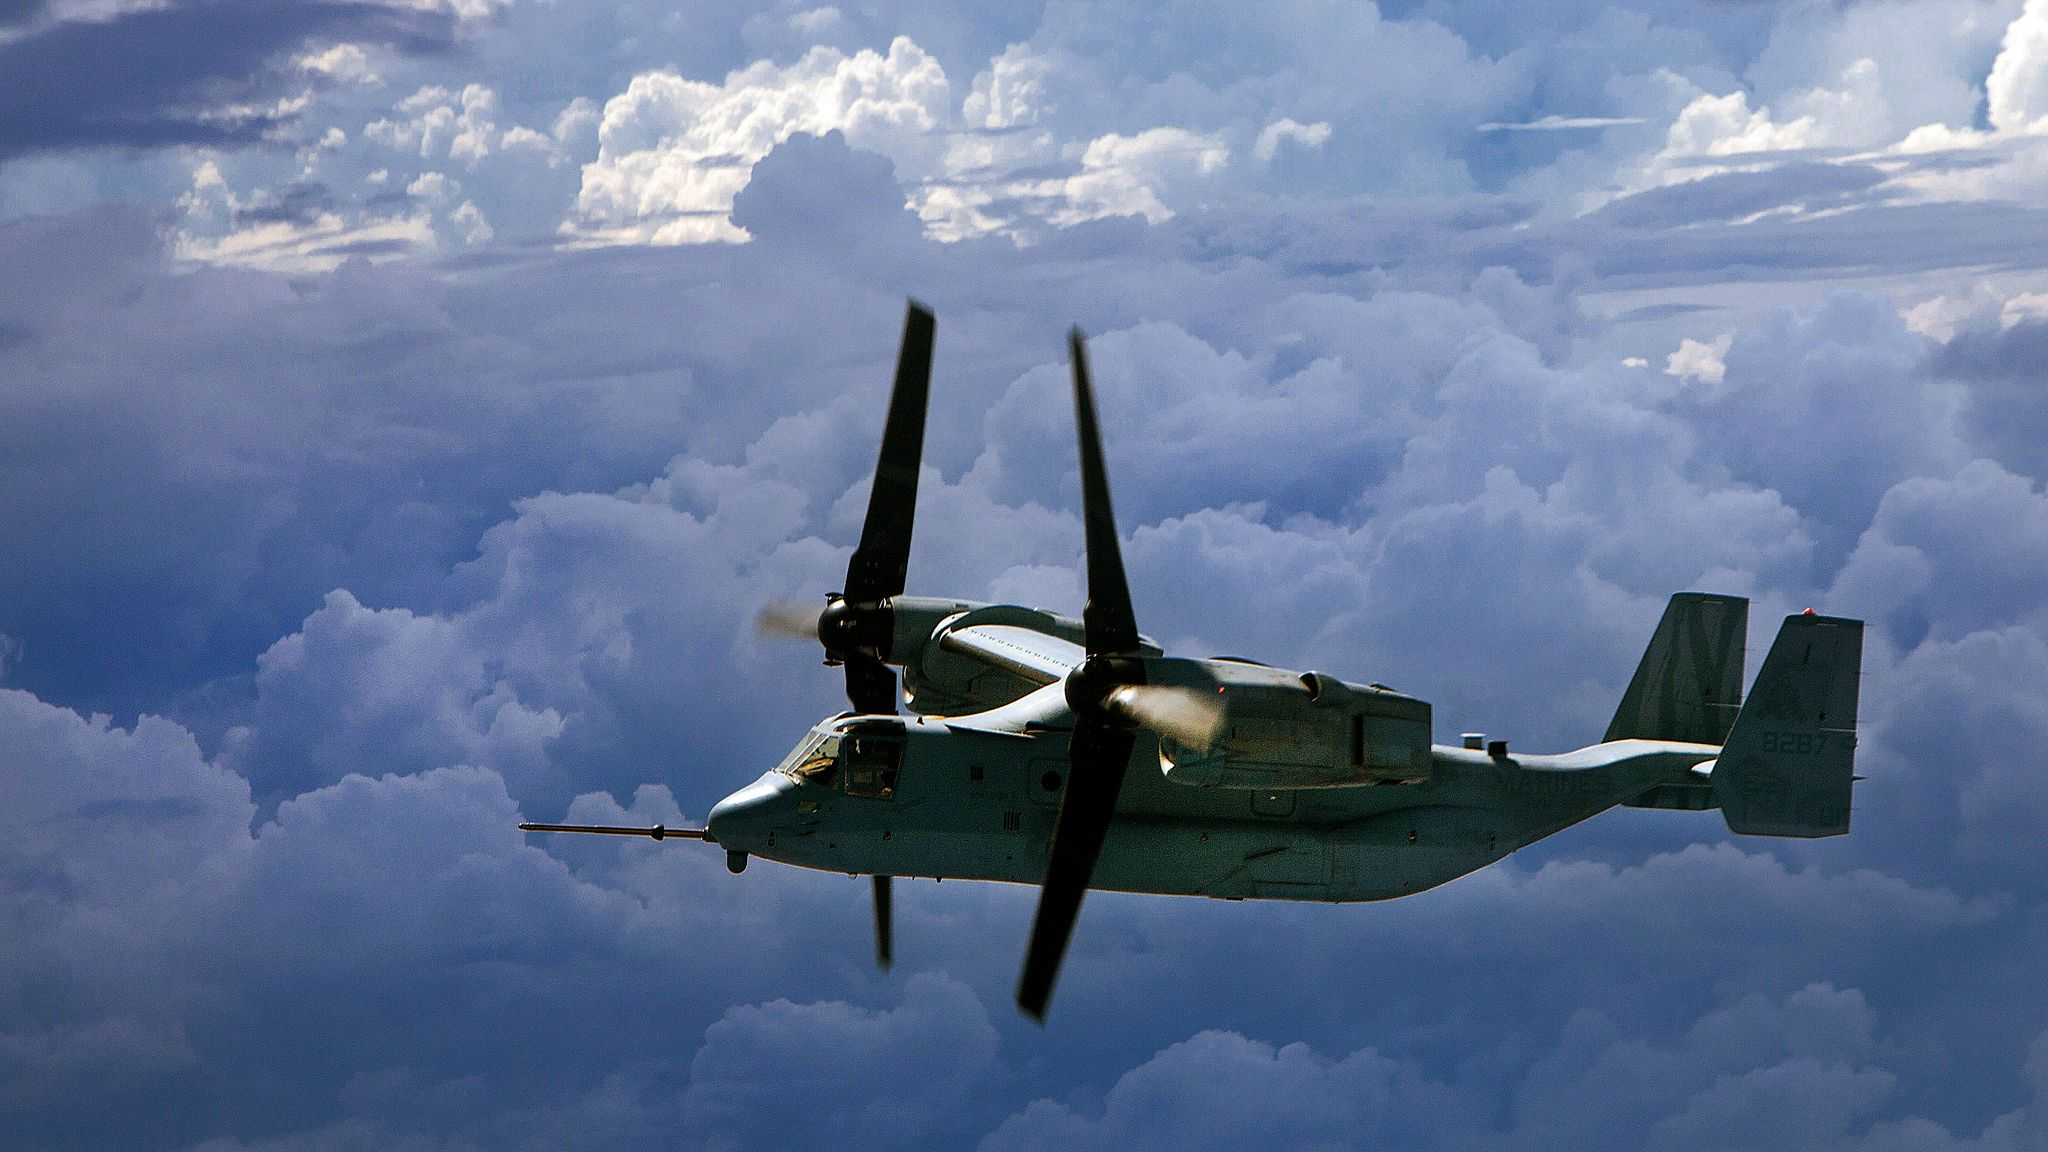 Osprey Flying Over Clouds Us military aircraft, Military